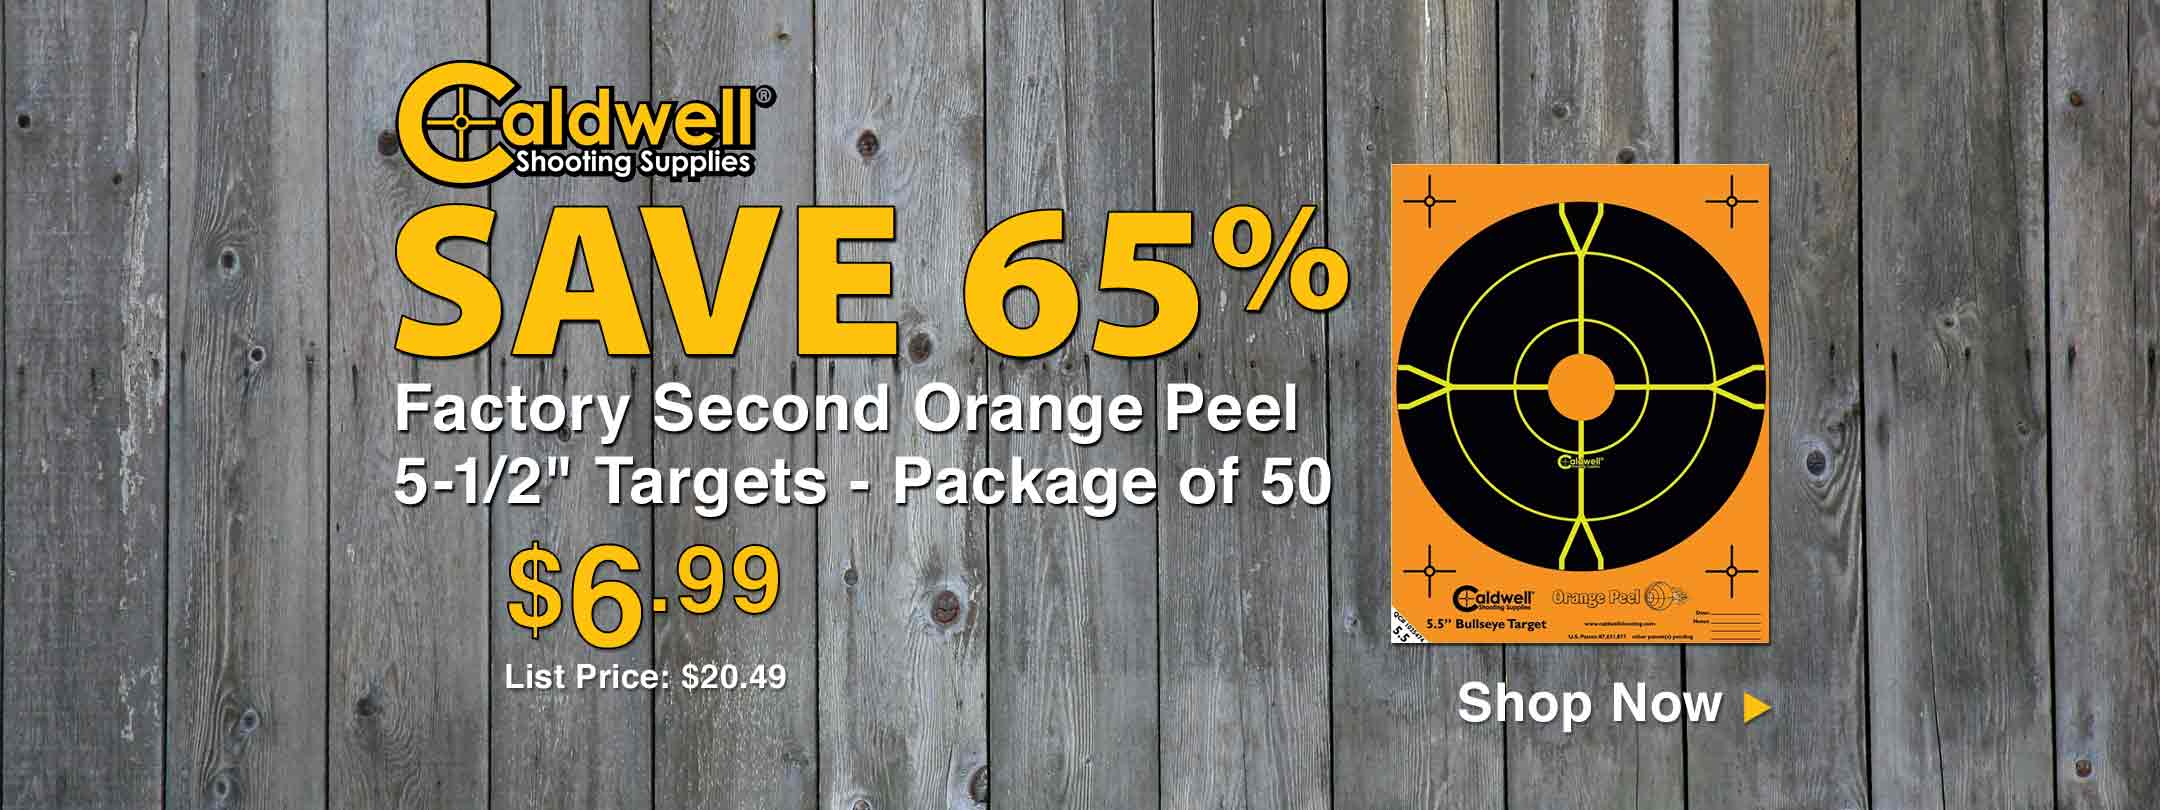 Save 65% on Caldwell Factory Second Orange Peel Targets